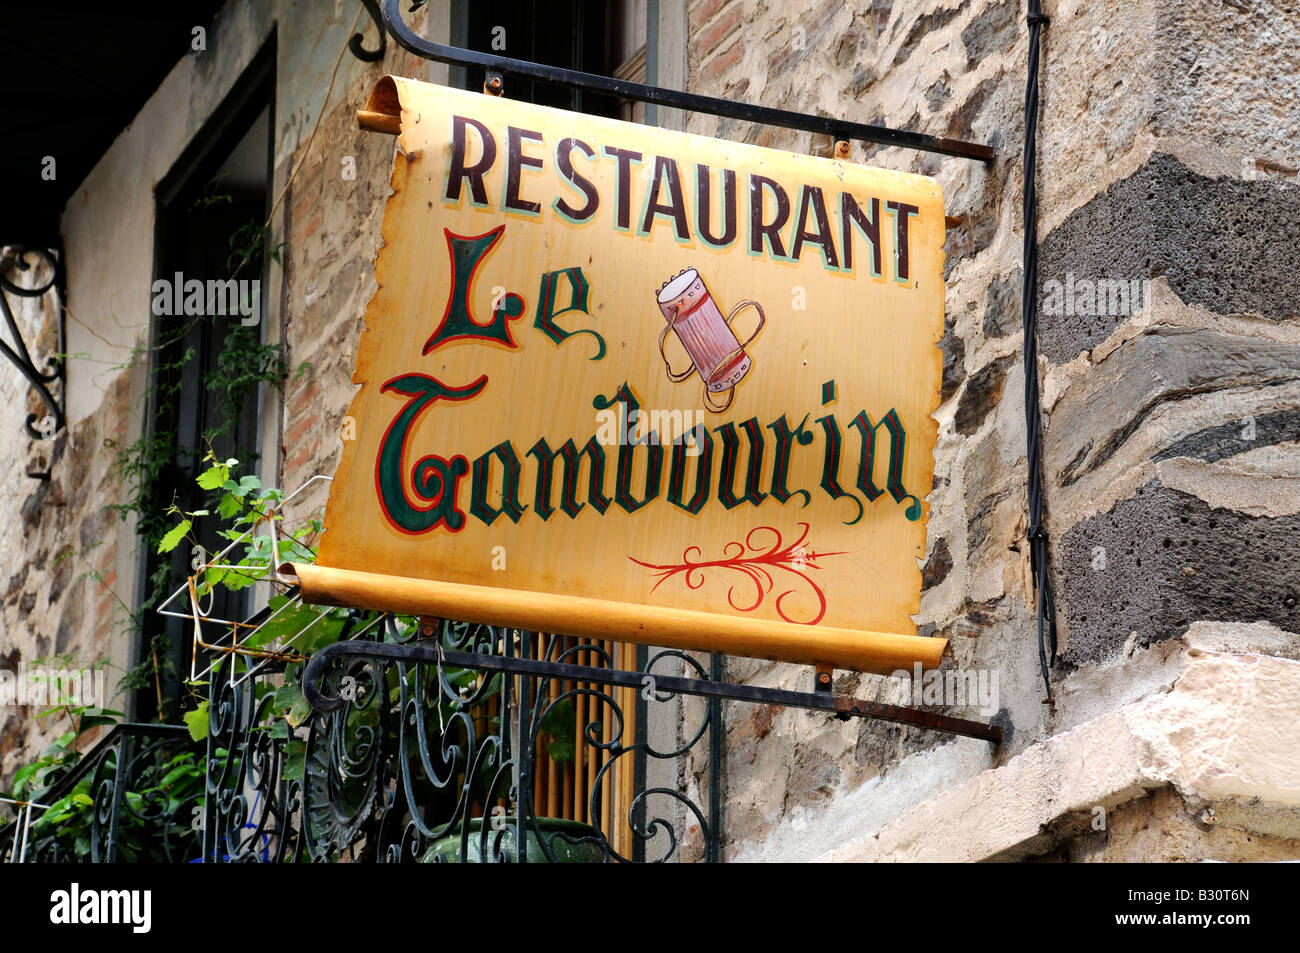 FRENCH RESTAURANT SIGN - Stock Image